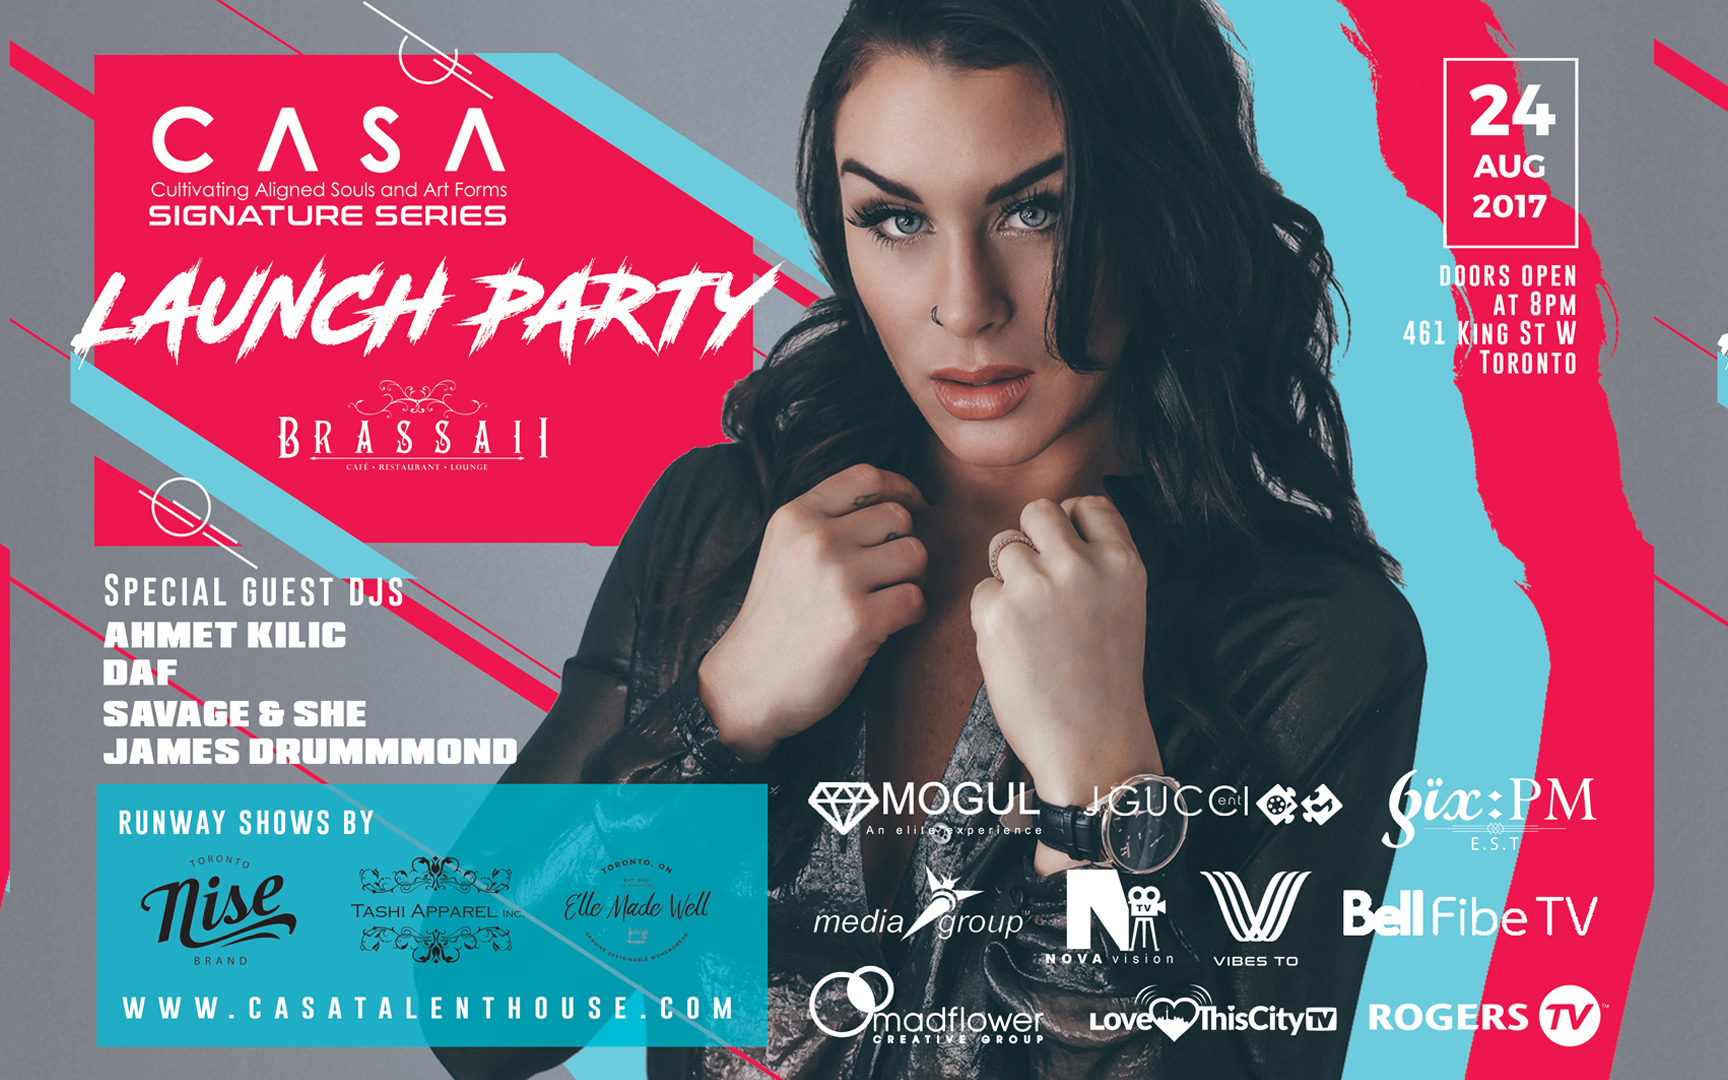 CASA Launch Event Official Poster